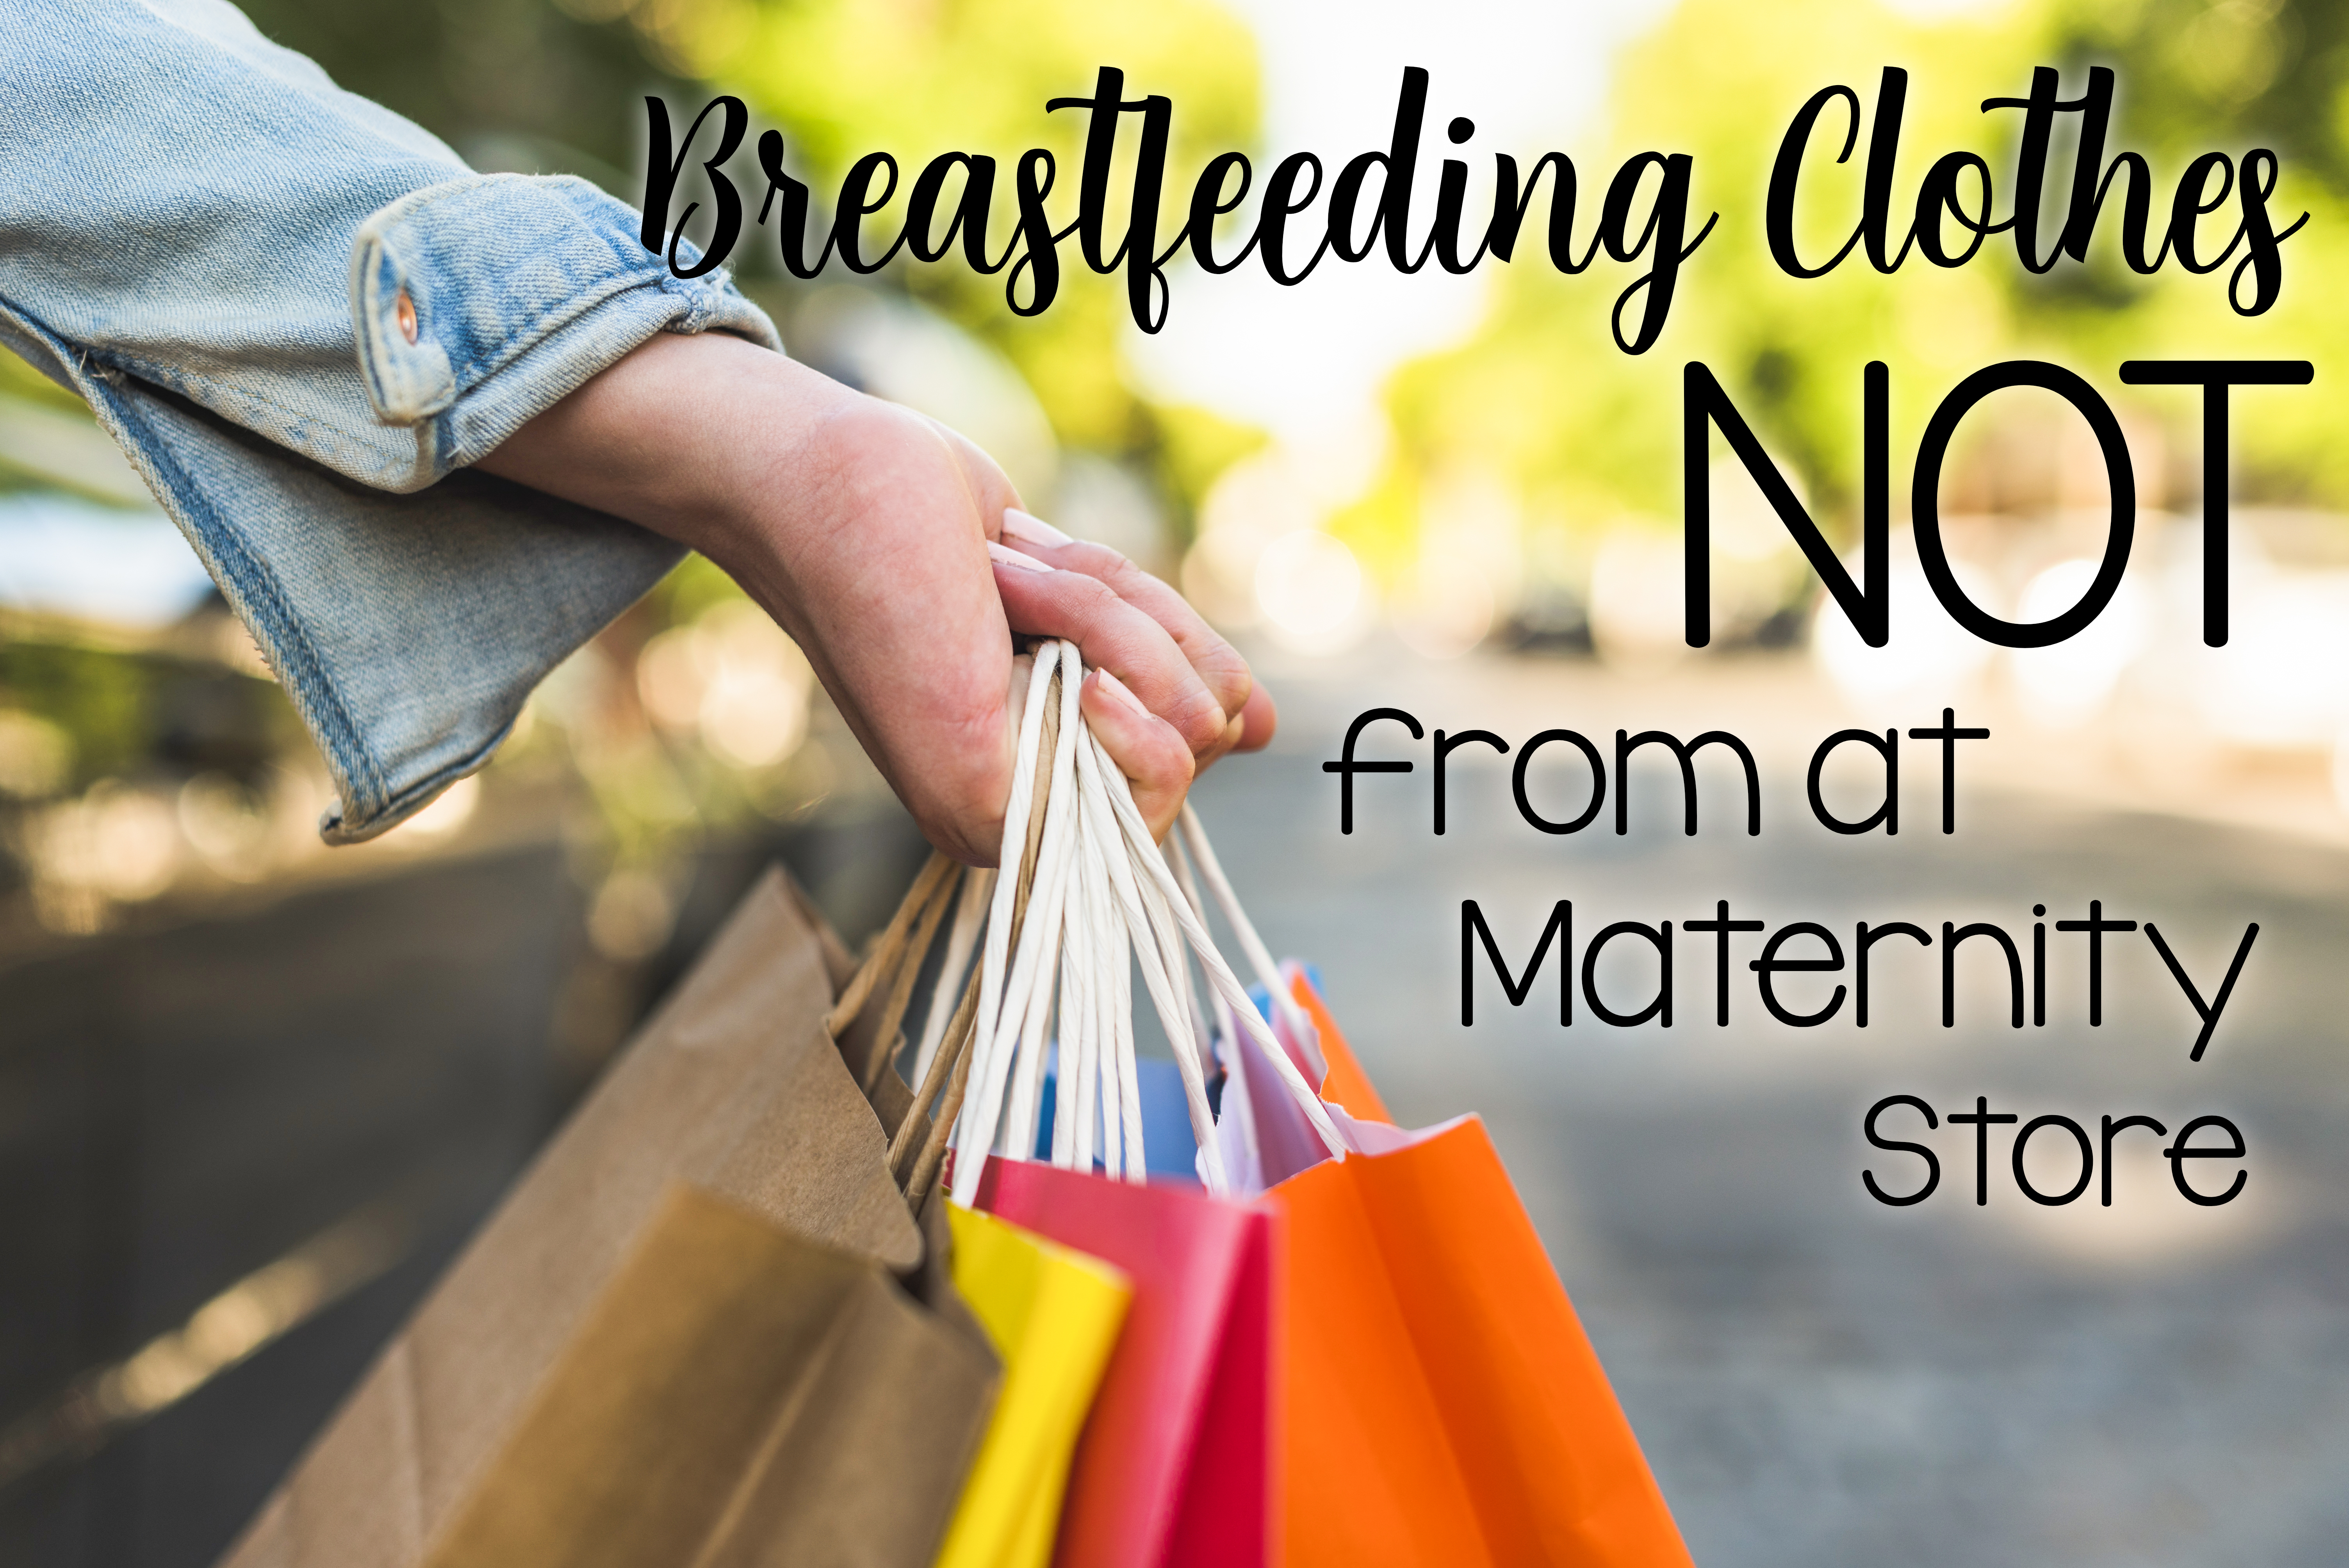 MaternityClothesNotfrom Mat Store